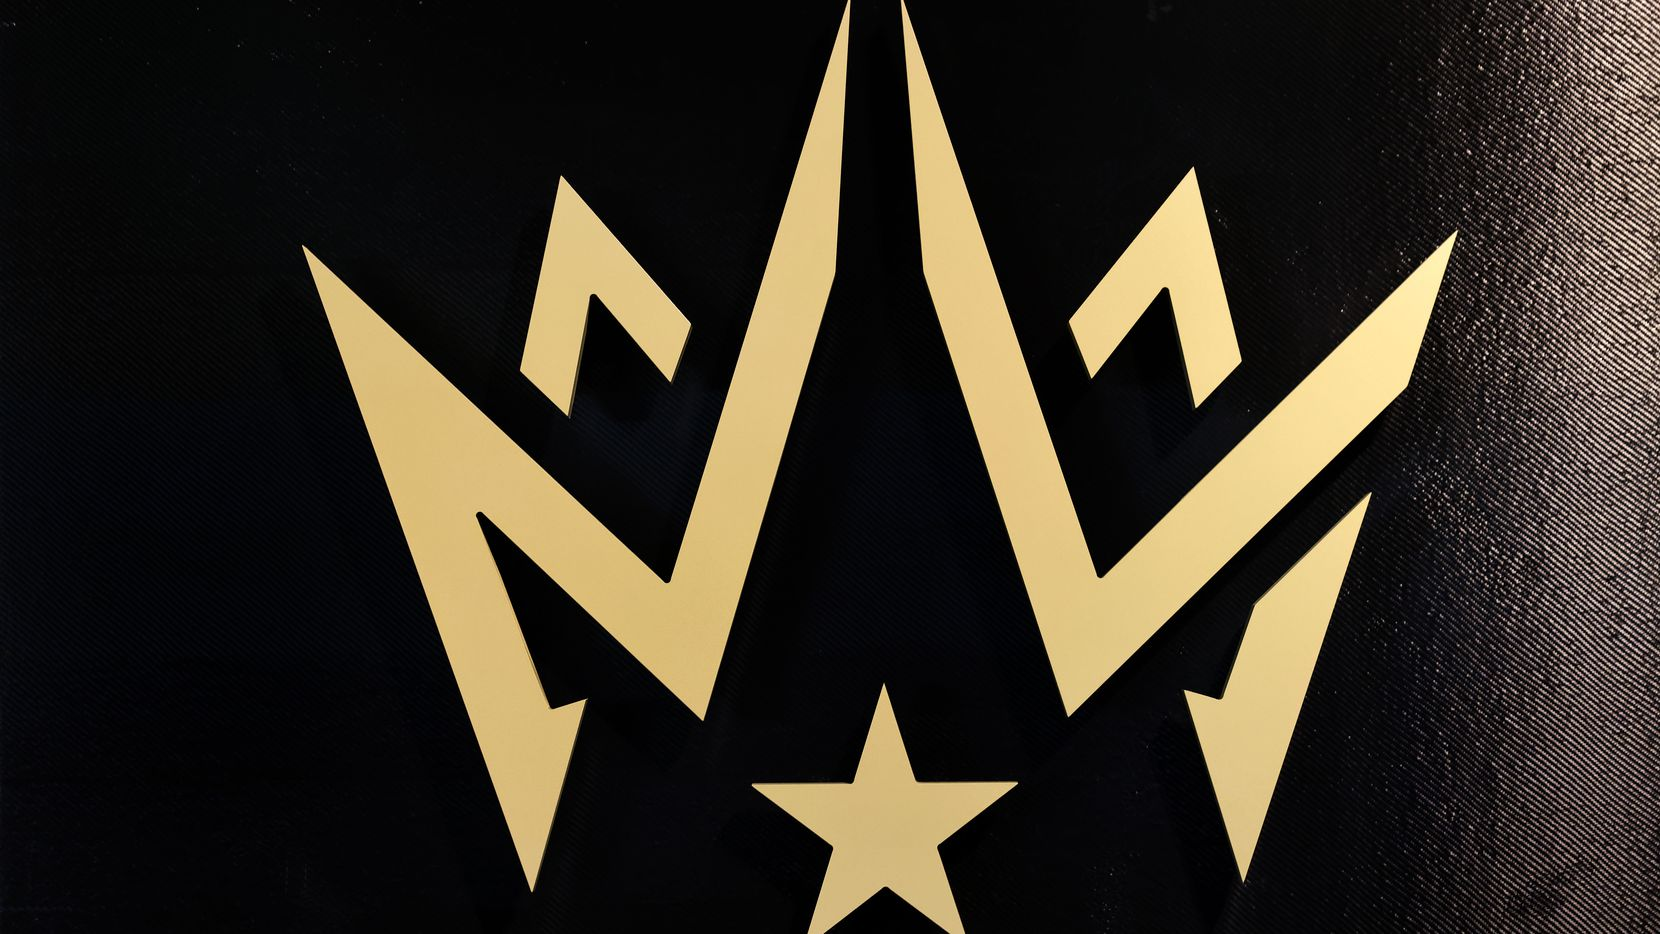 The Dallas Empire team in the Call of Duty League won the championship last year. They are located at Envy Gaming Headquarters in Dallas, Monday, March 29, 2021.